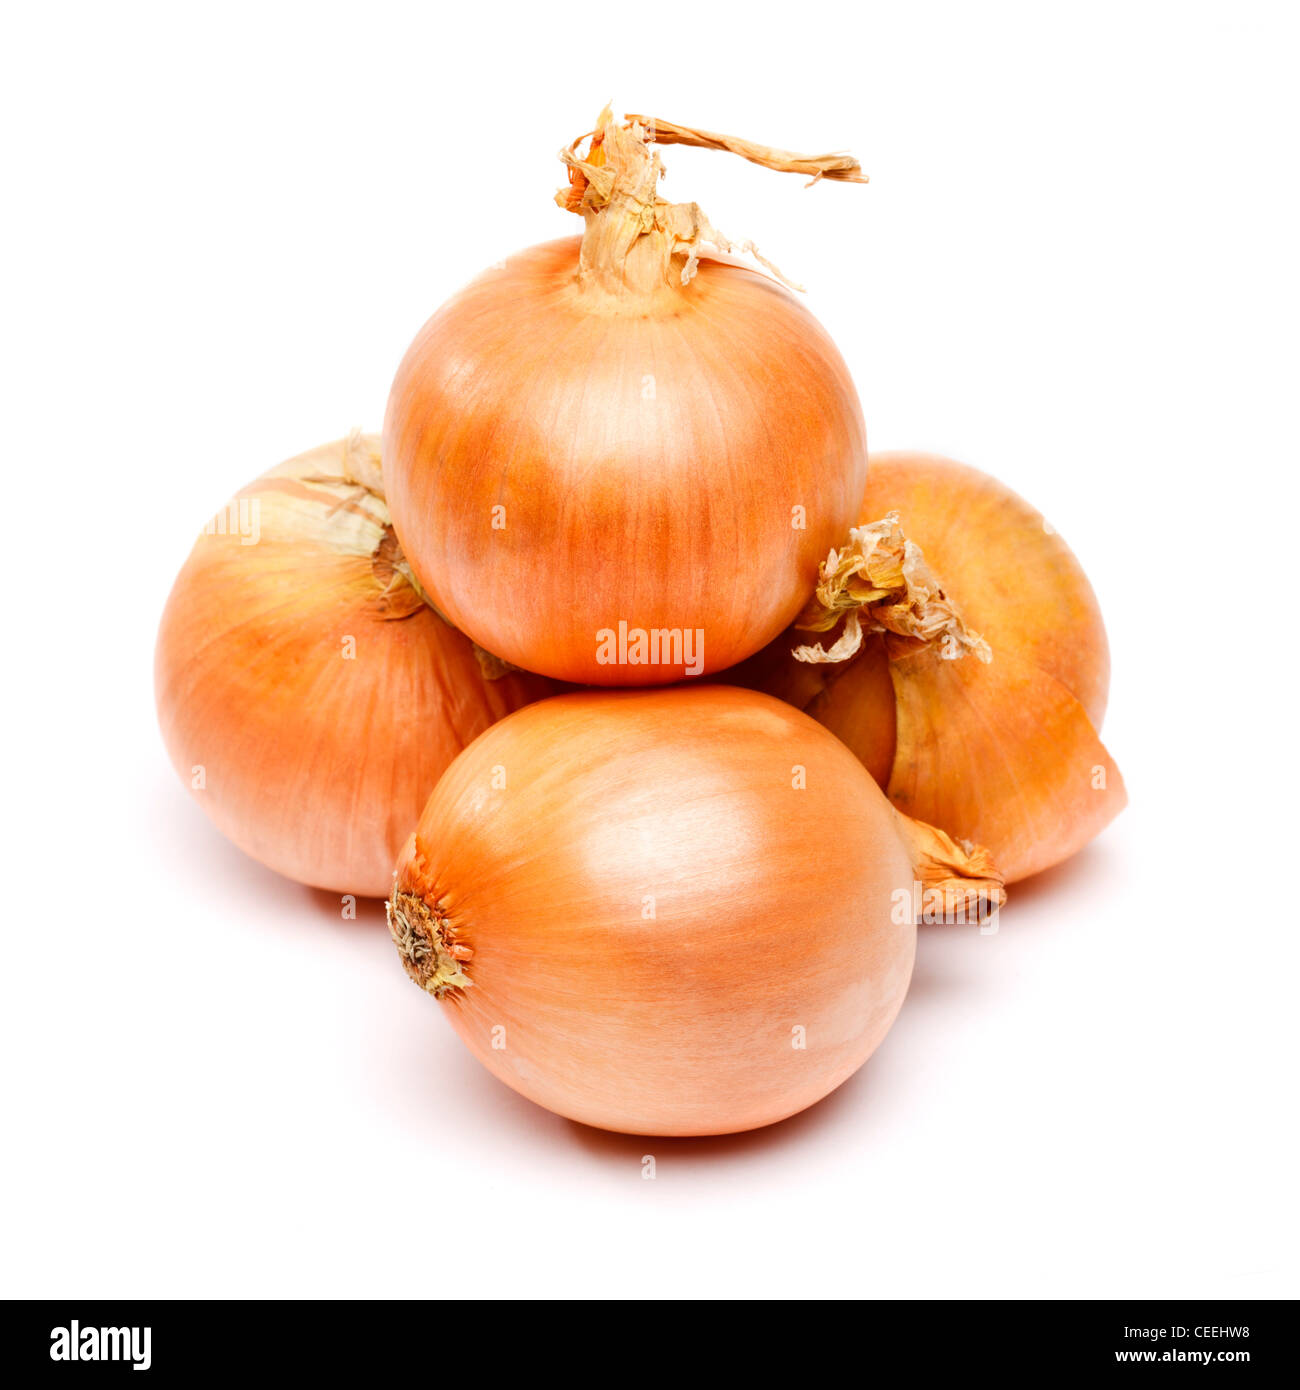 Onions on white background - Stock Image